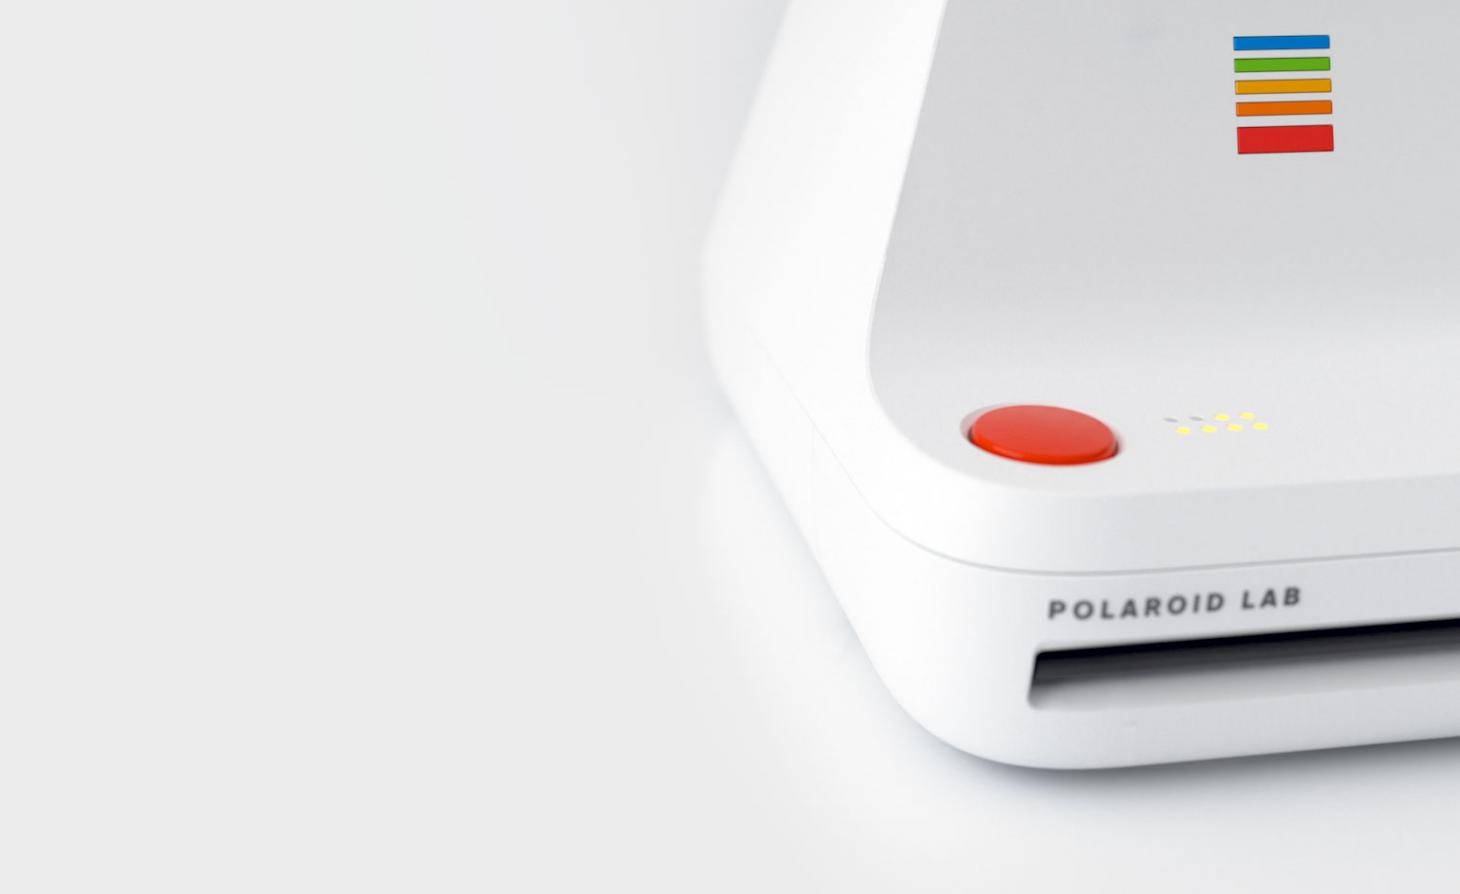 Detail view of Polaroid Lab digital to analogue photo printer